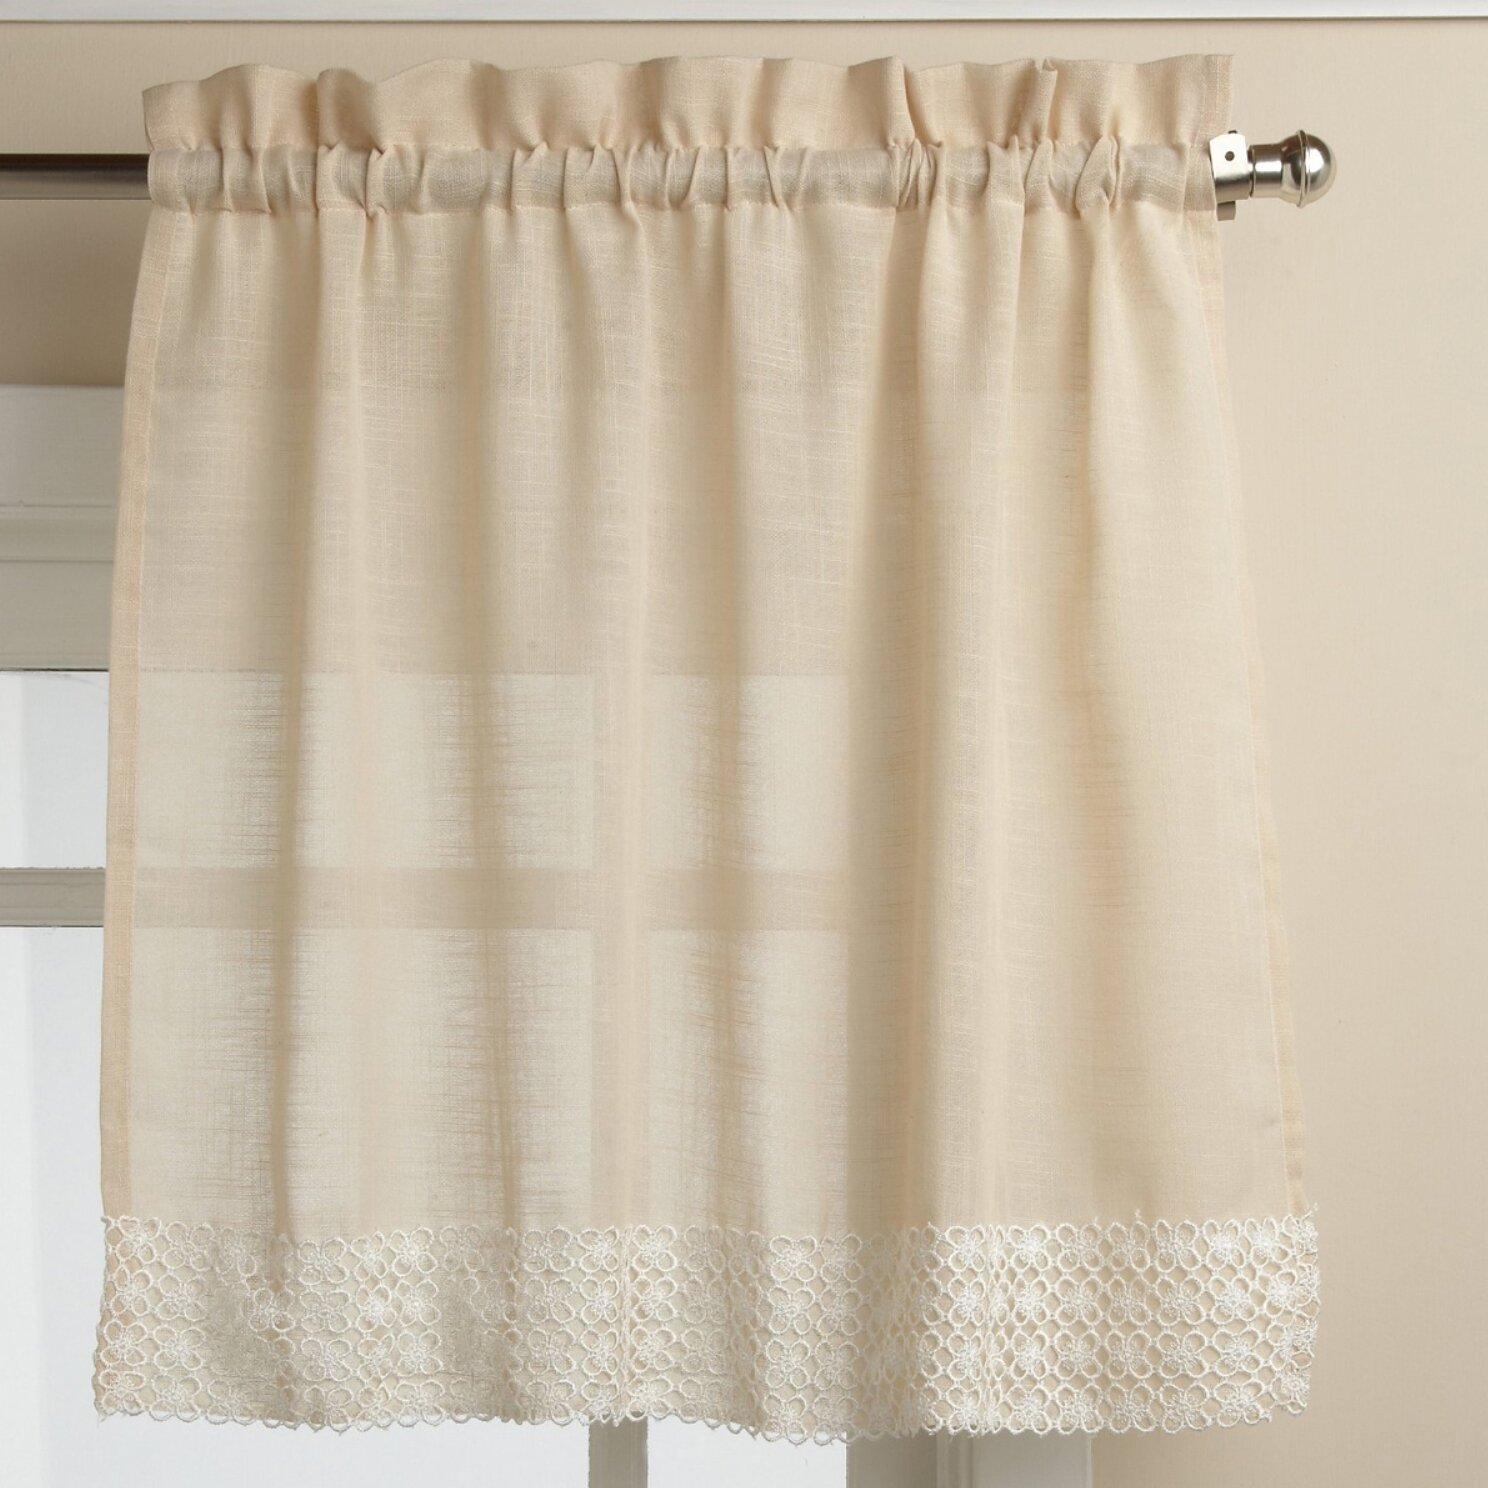 Sweet Home Collection Salem Kitchen Tier Curtain & Reviews | Wayfair.ca